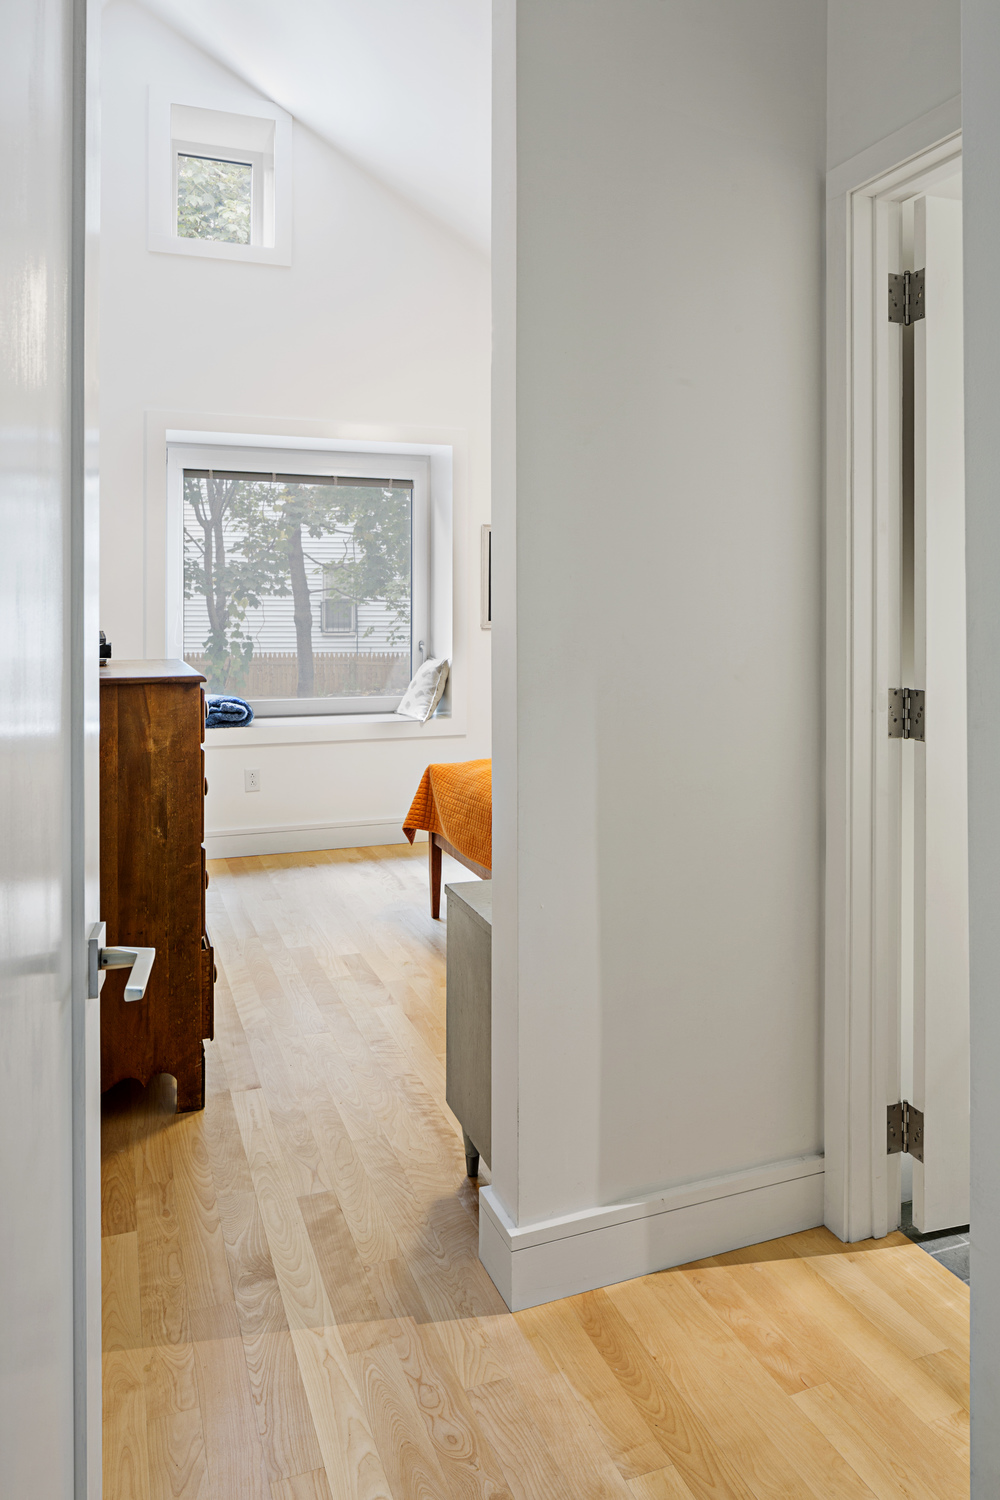 2nd Bedroom Door.jpg